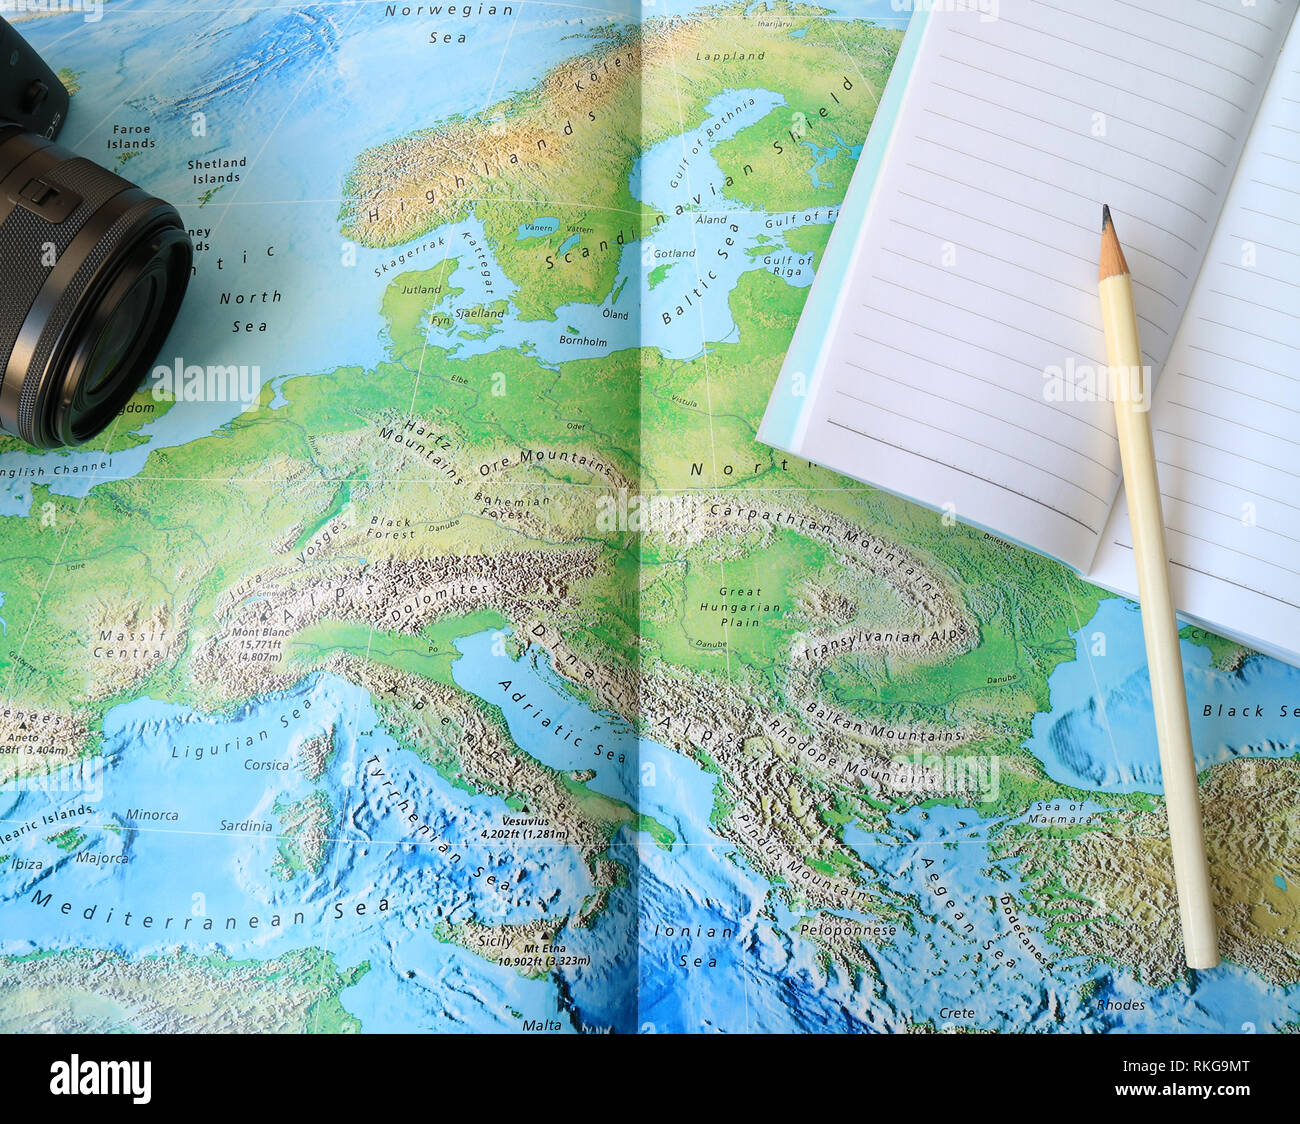 Ibiza On World Map.Black Camera And Lined Notebook With White Pencil On The World Map